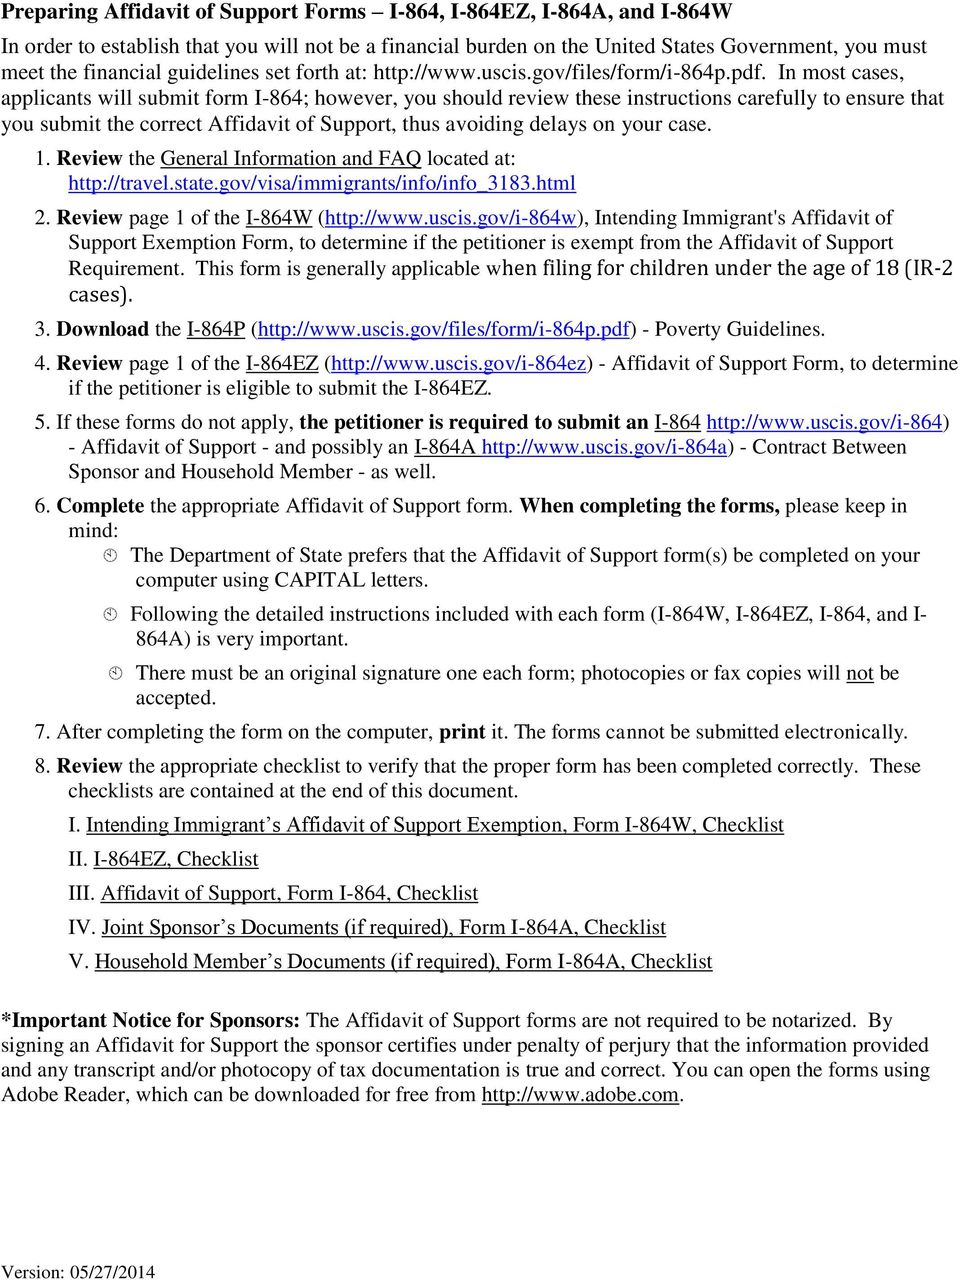 Visa instructions and checklist for immigrant visa applicants pdf in most cases applicants will submit form i 864 however you should falaconquin